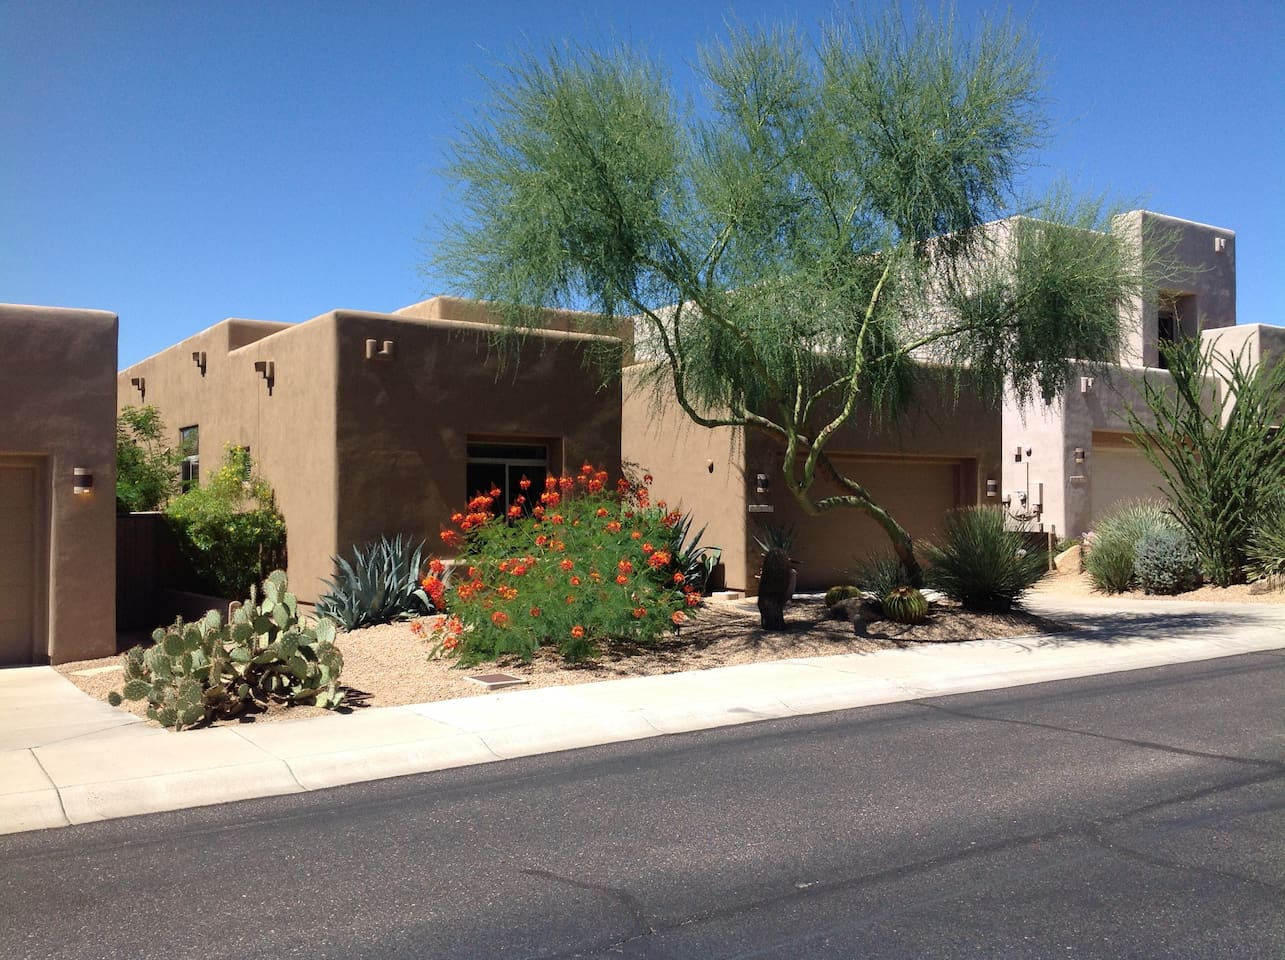 Our home is on a quiet street in Pinnacle Canyon, a gated community within Troon North in North Scottsdale.  The home has a clean double car garage, and the ceilings are a soaring 14' high. Feels VERY spacious!